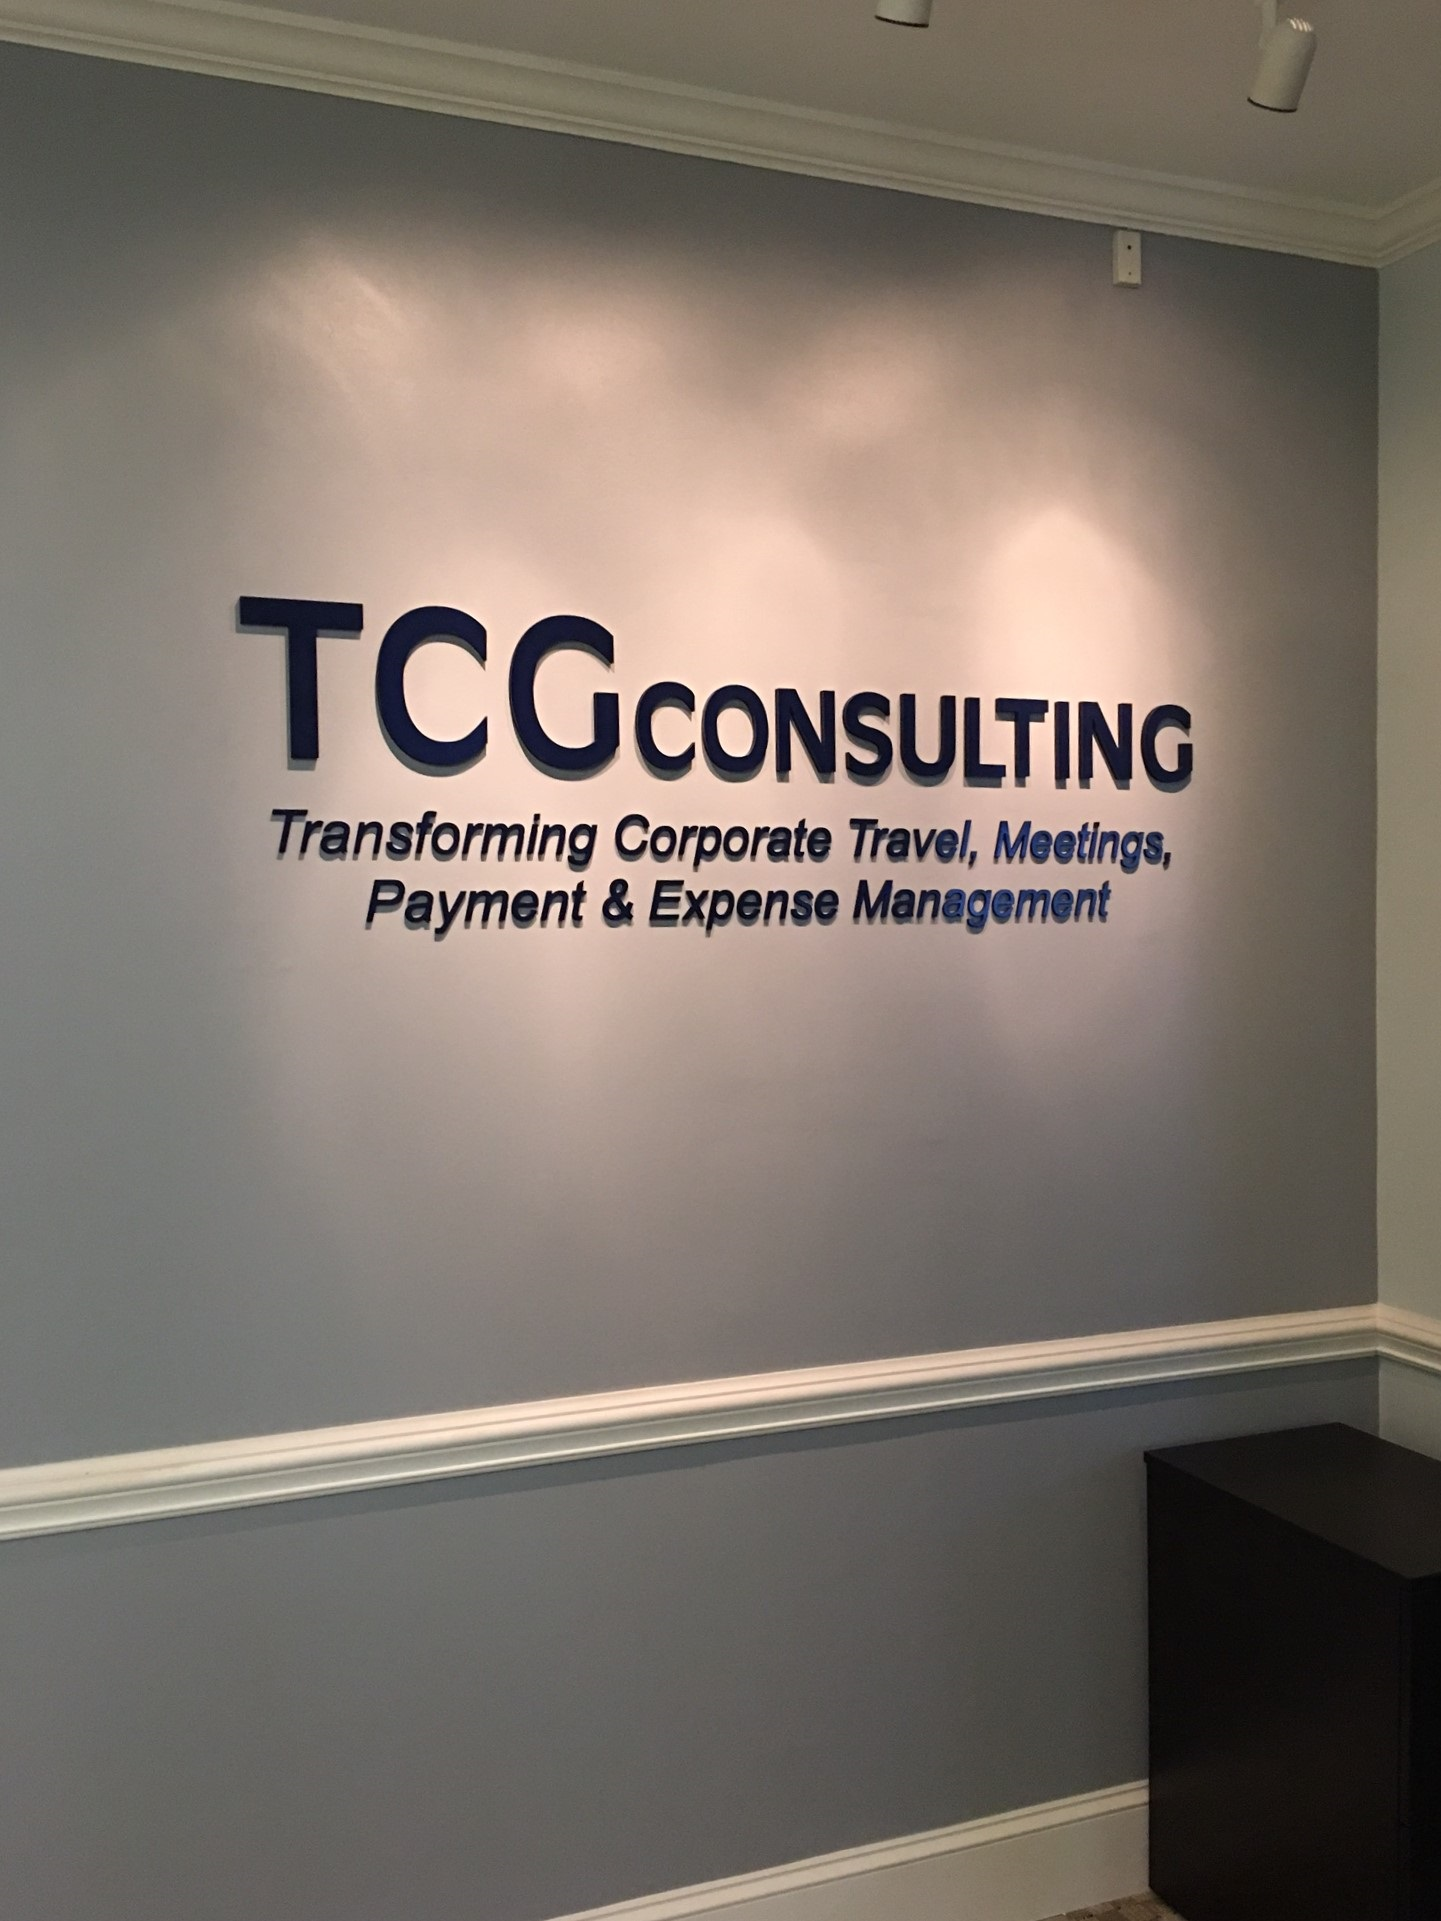 Check Out This Interior Signage For Tcg Consulting Of